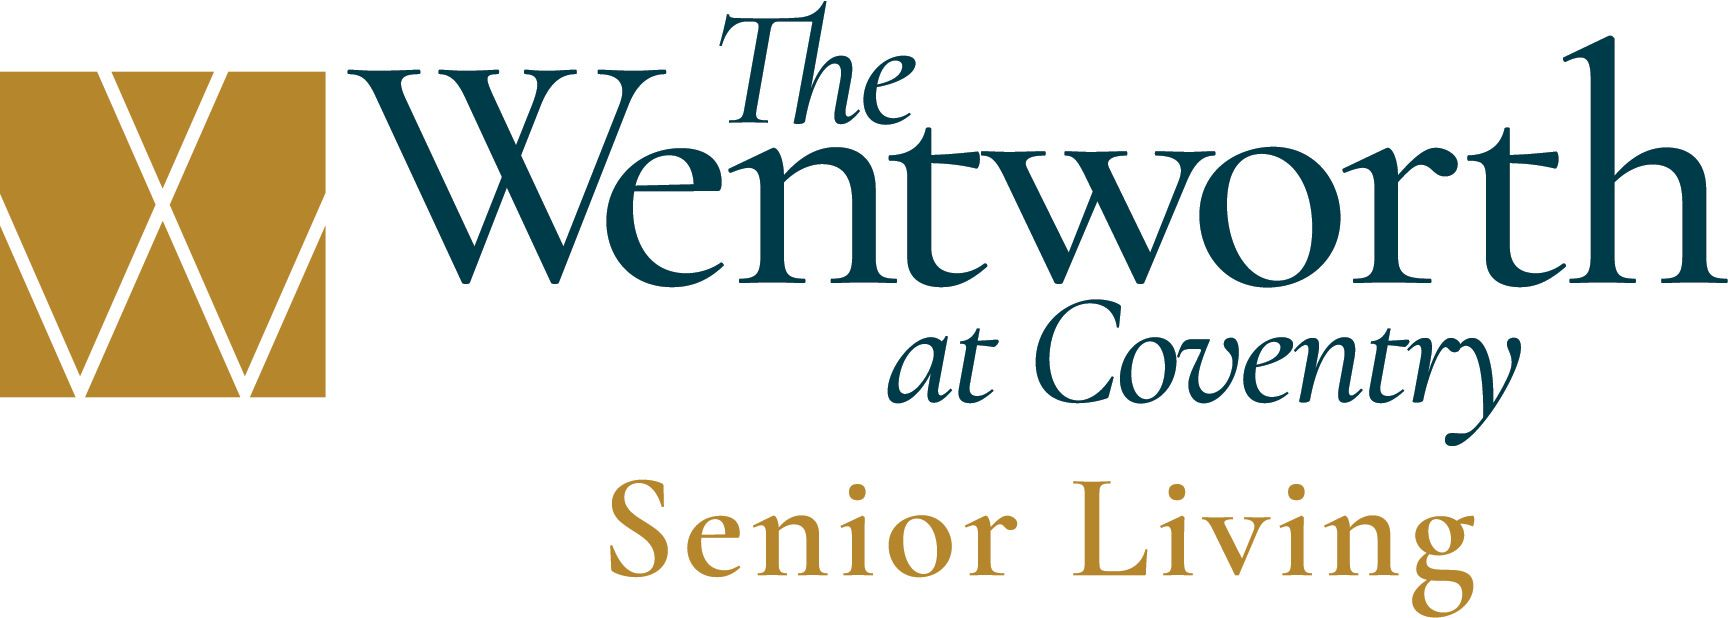 The Wentworth at Coventry